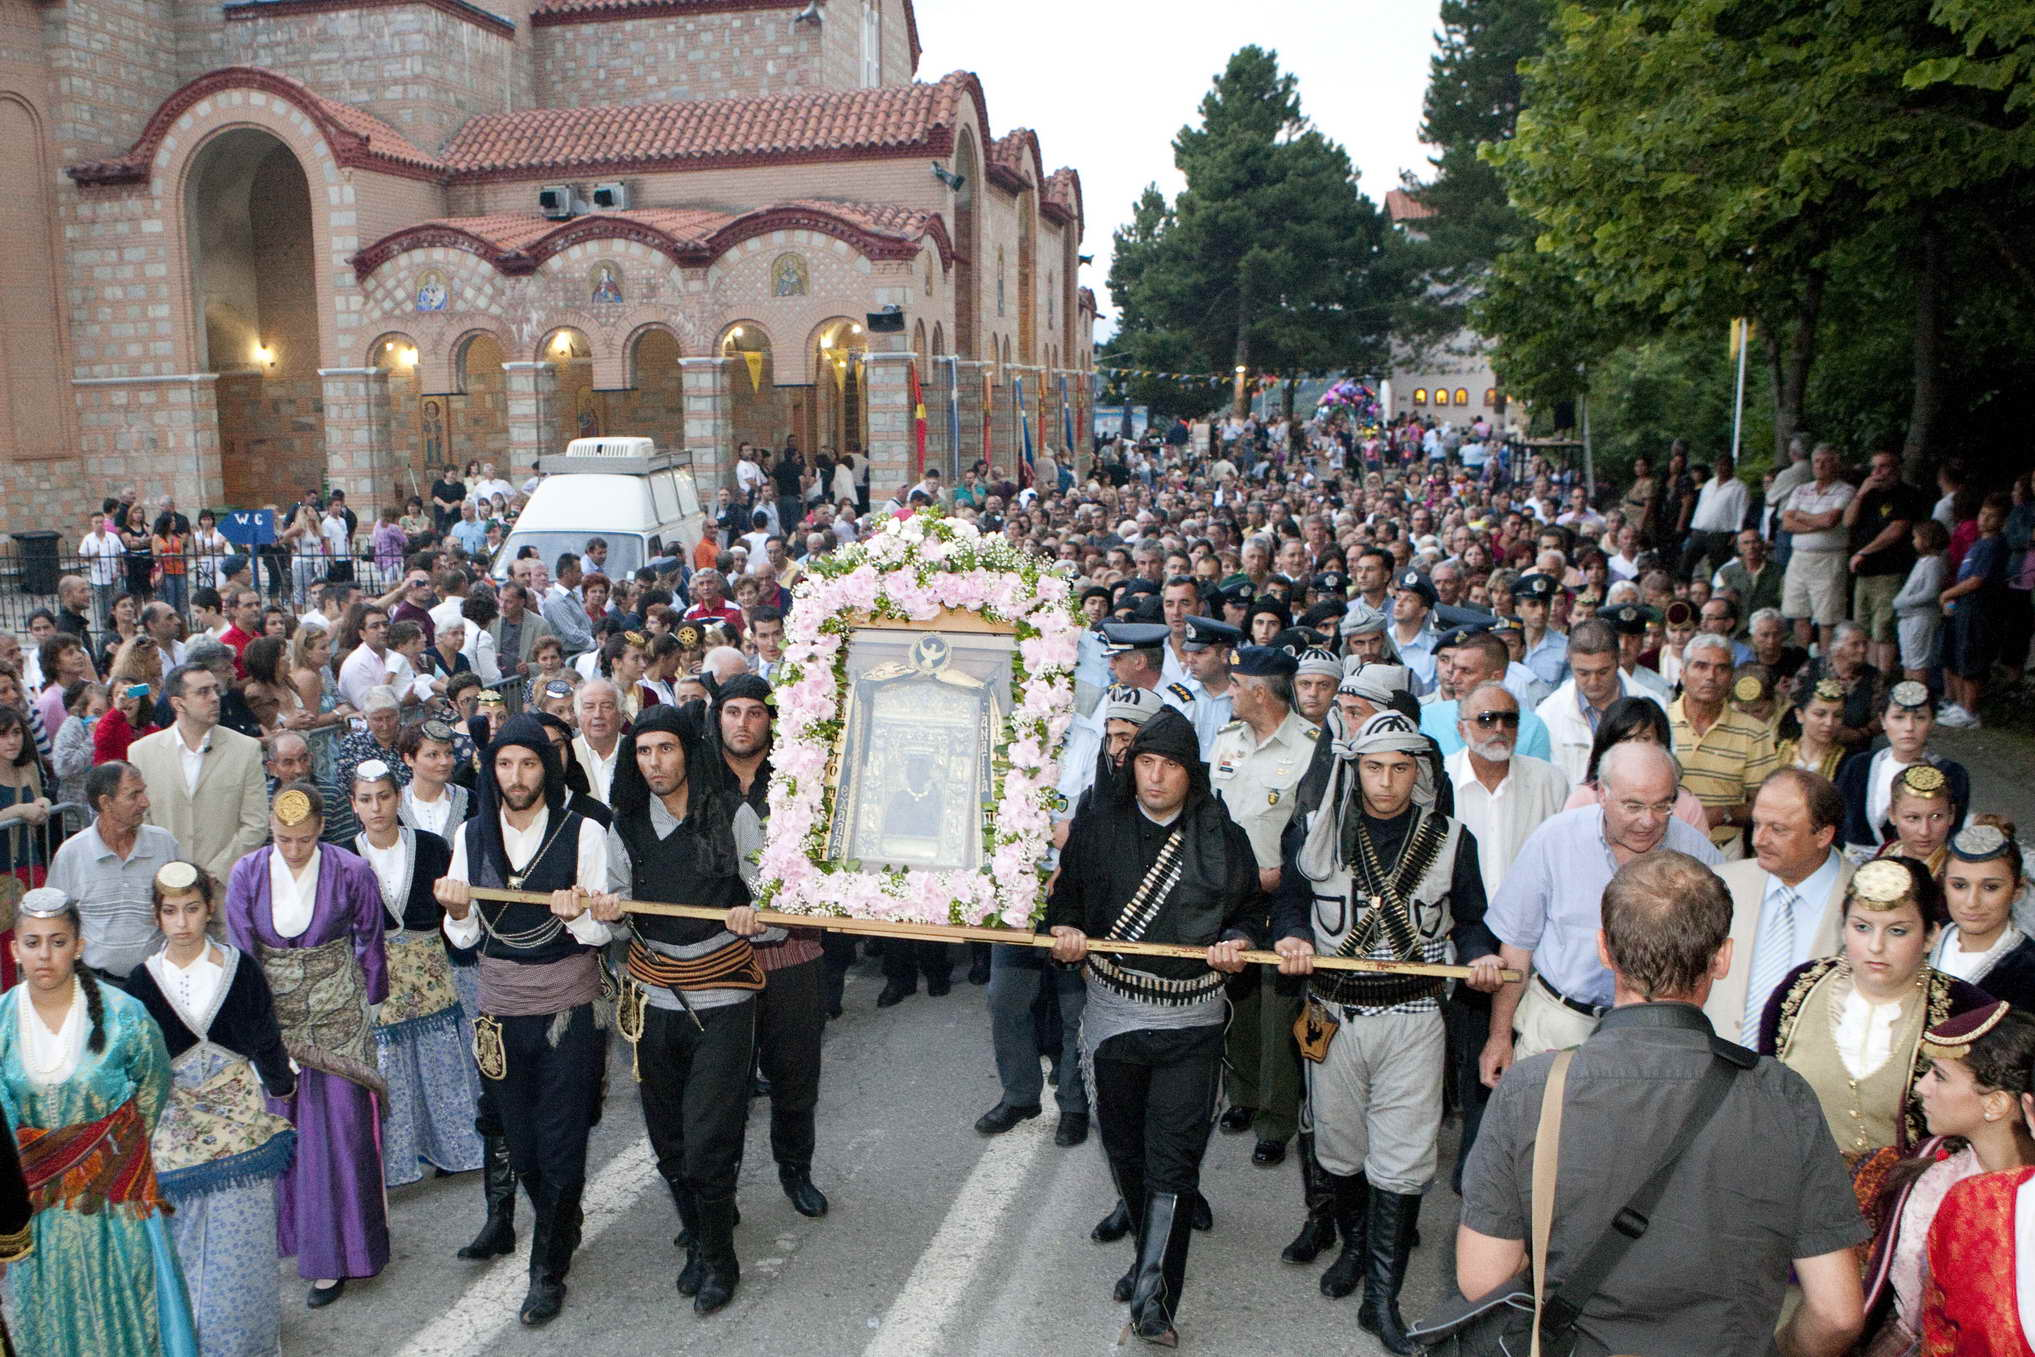 Customs and traditions of assumption day on august 15th for Costumbres de grecia